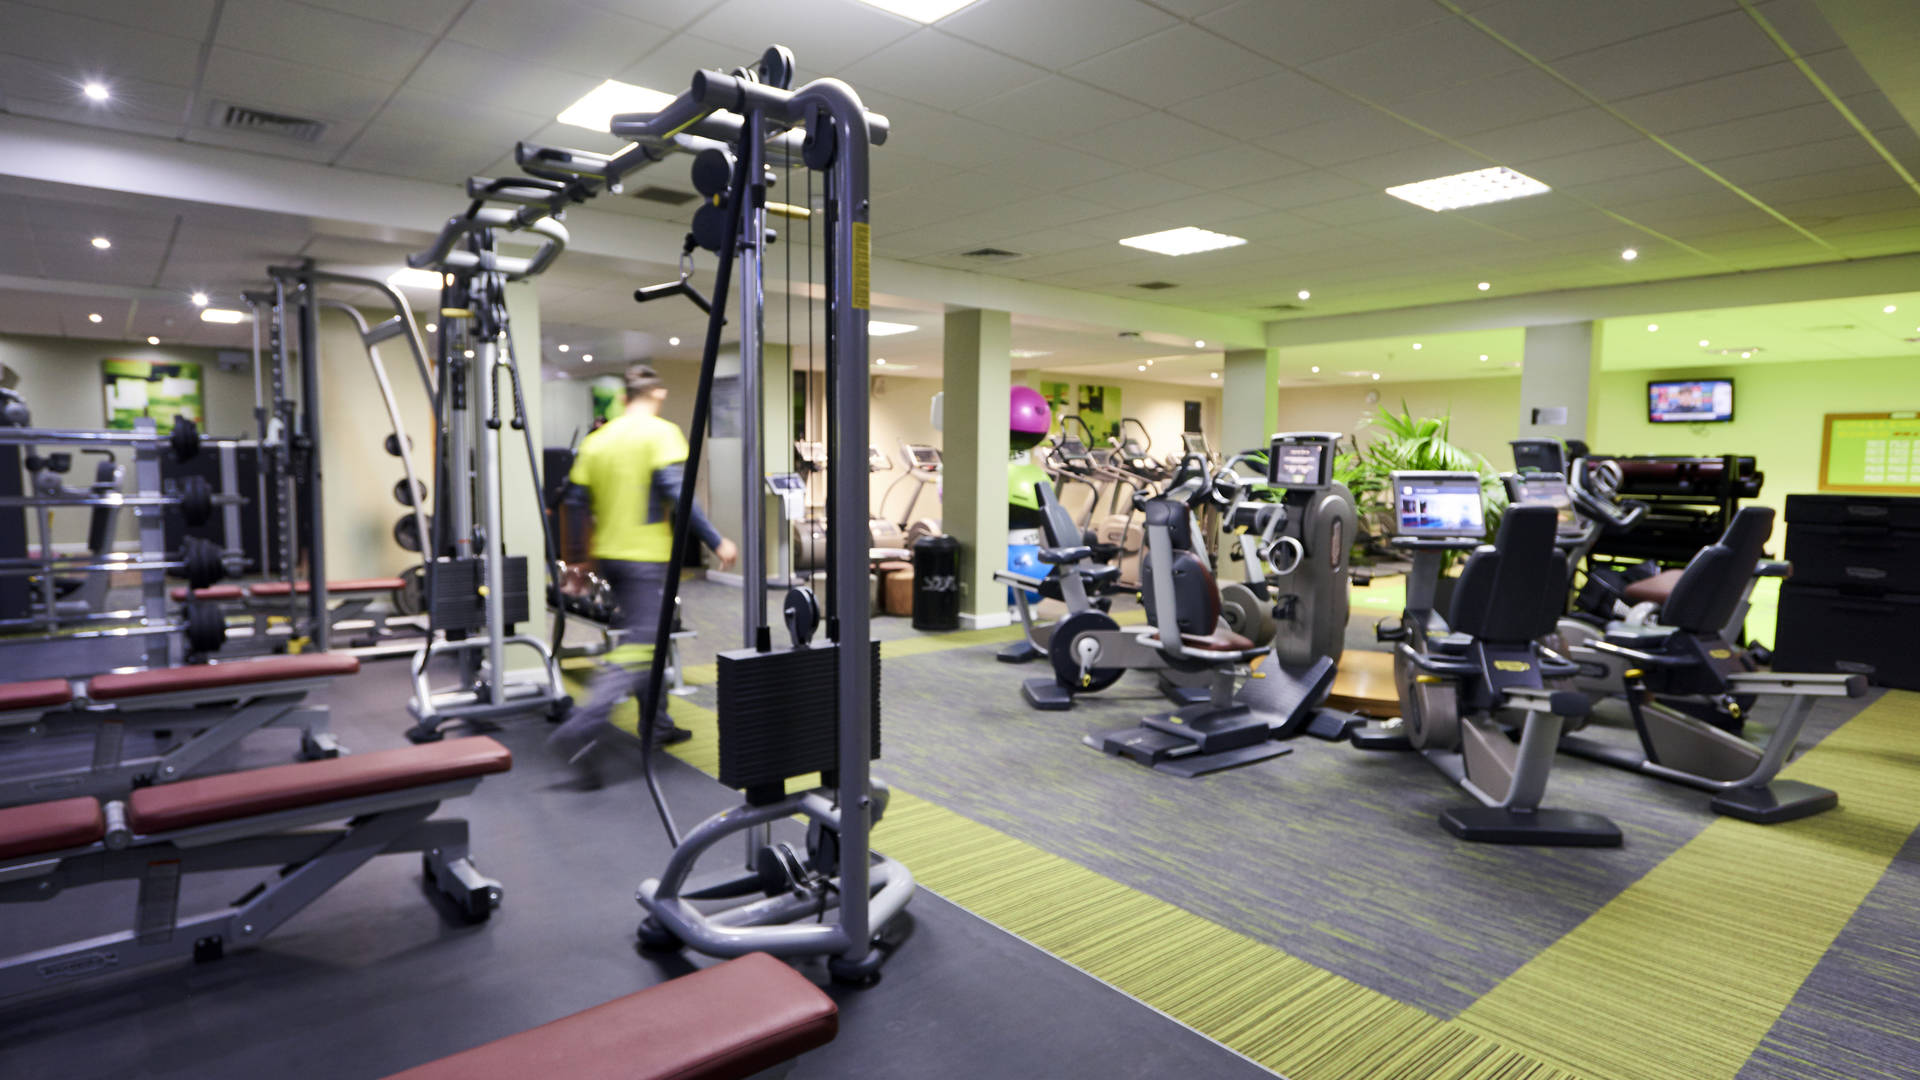 Gym at The Club Company